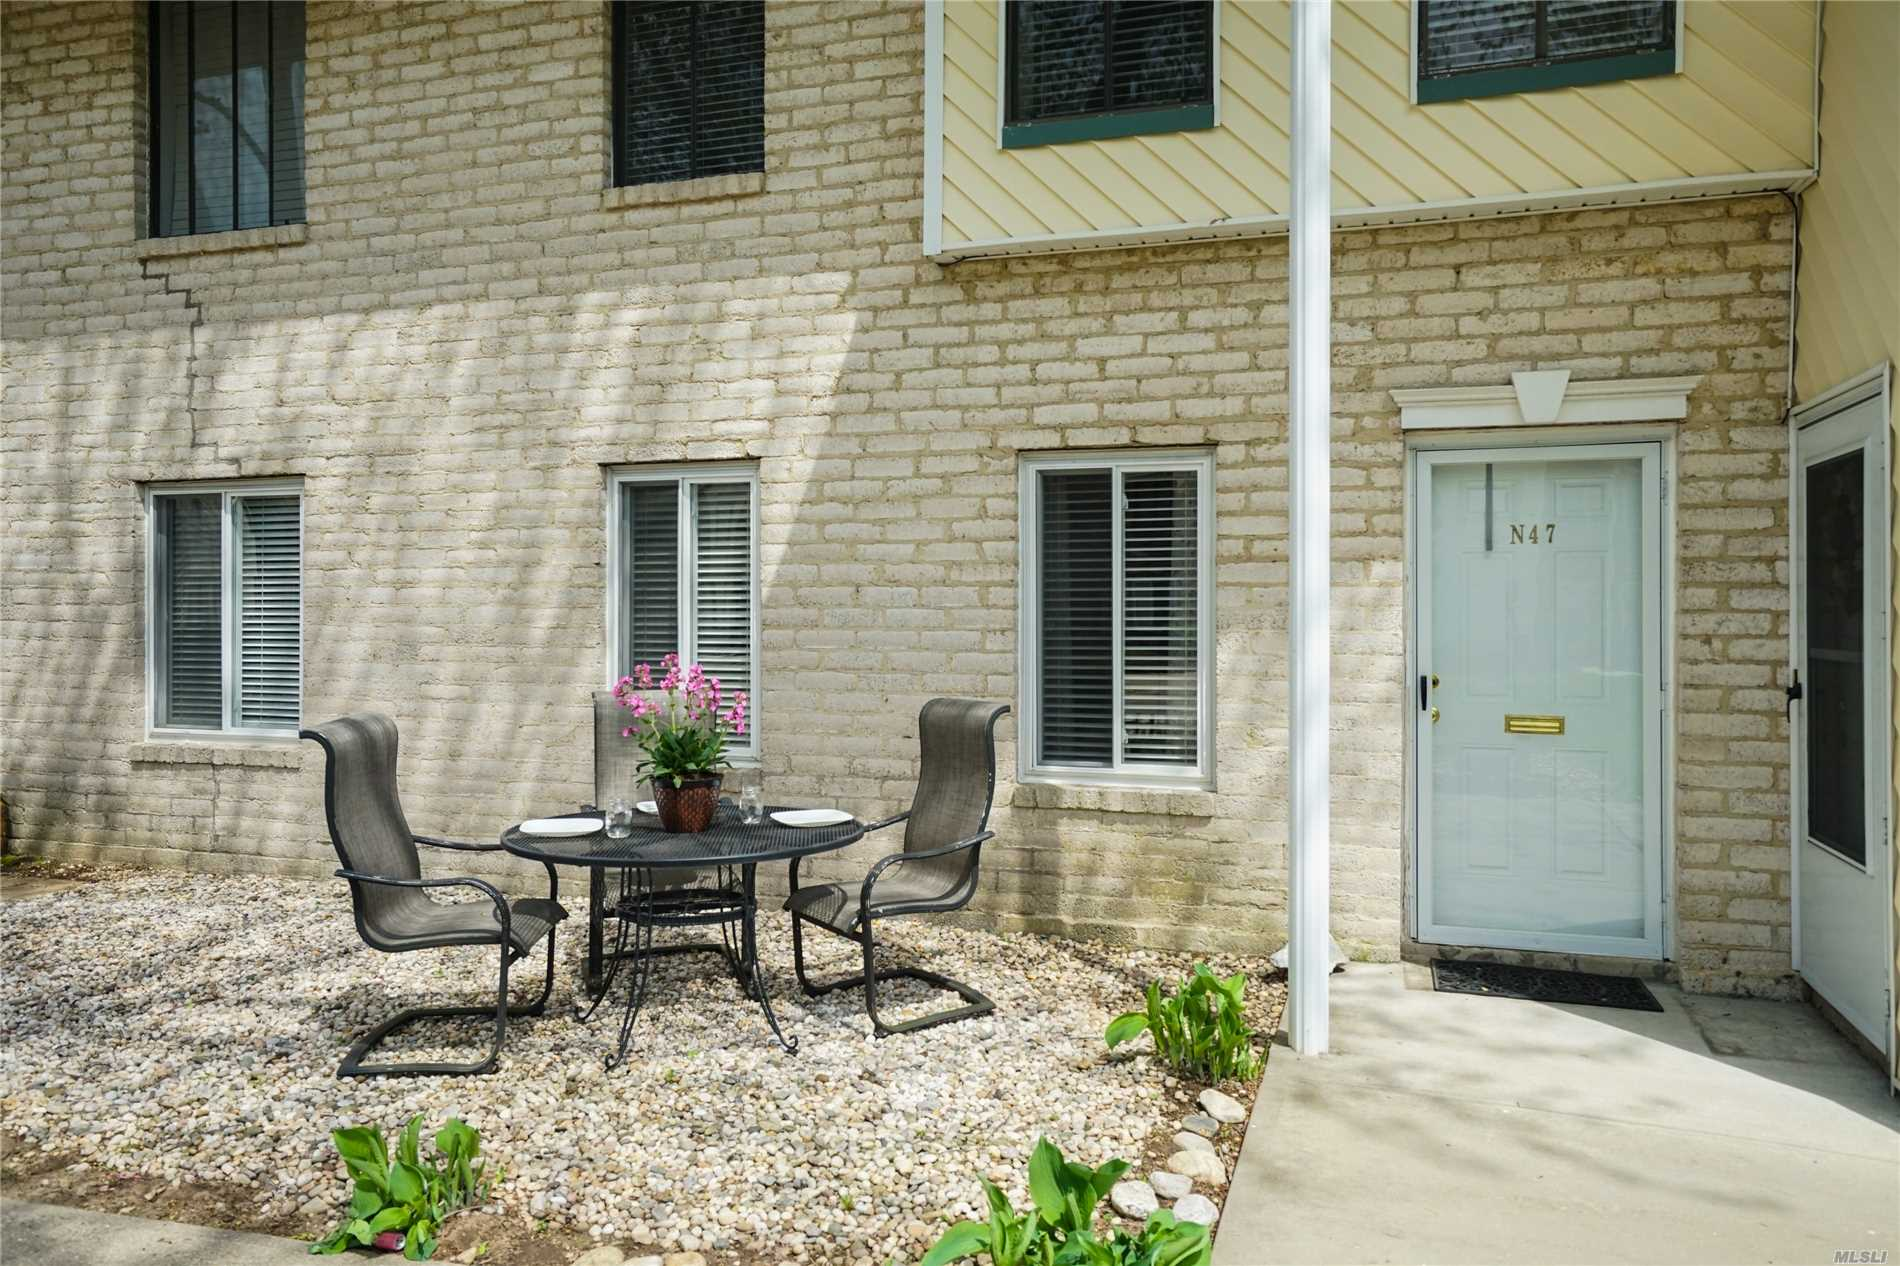 Freshly Painted Lower 1 Bedroom Unit With Newer Carpets And Maintained Beautifully. Ample Closet Space Throughout! Don't Miss This Beautiful Unit In North Isle!